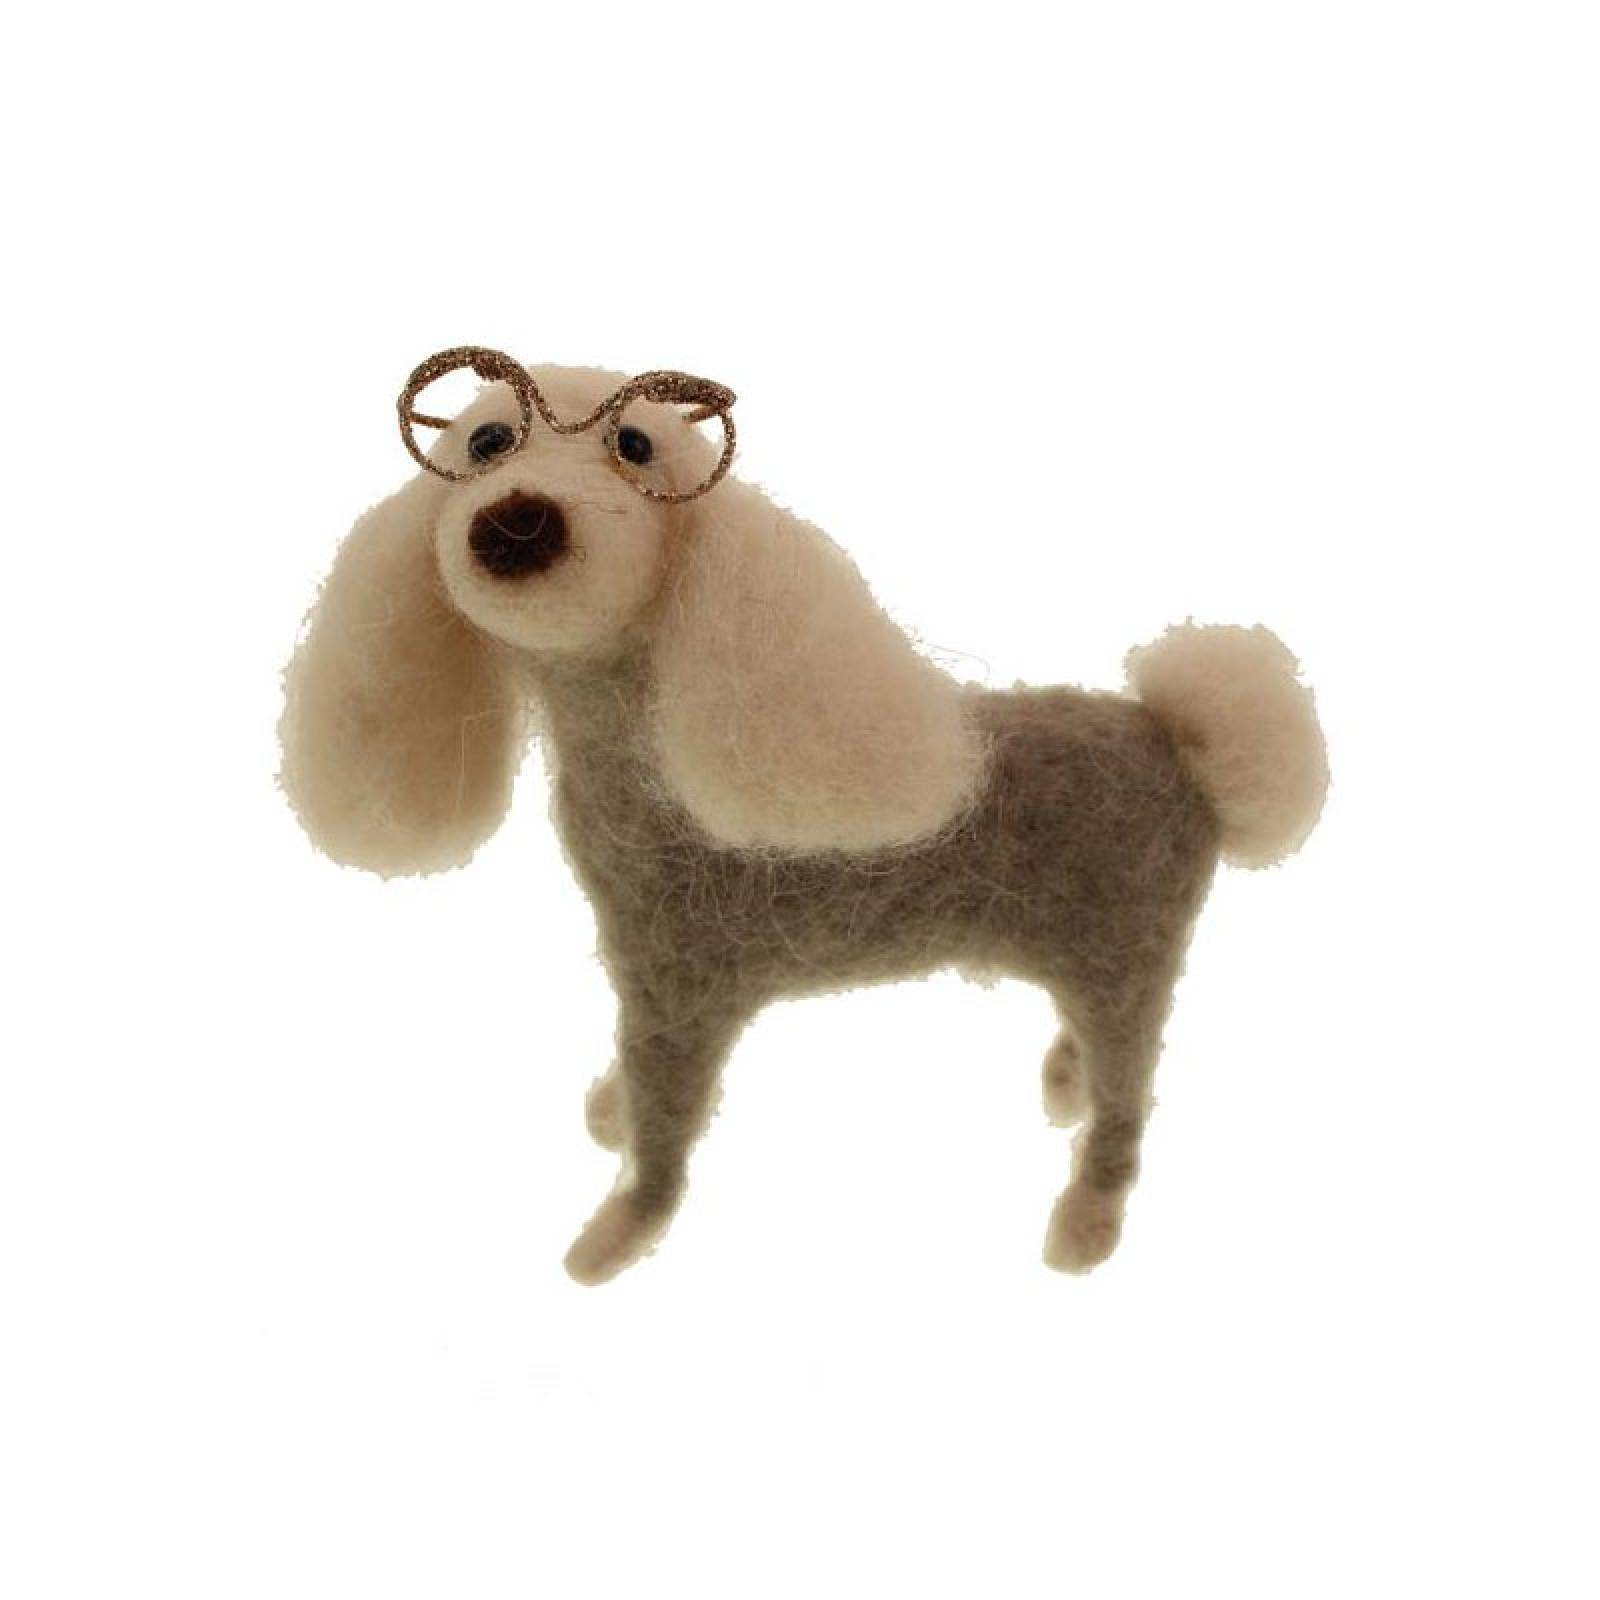 Poodle Dog With Glasses Felt Hanging Christmas Decoration